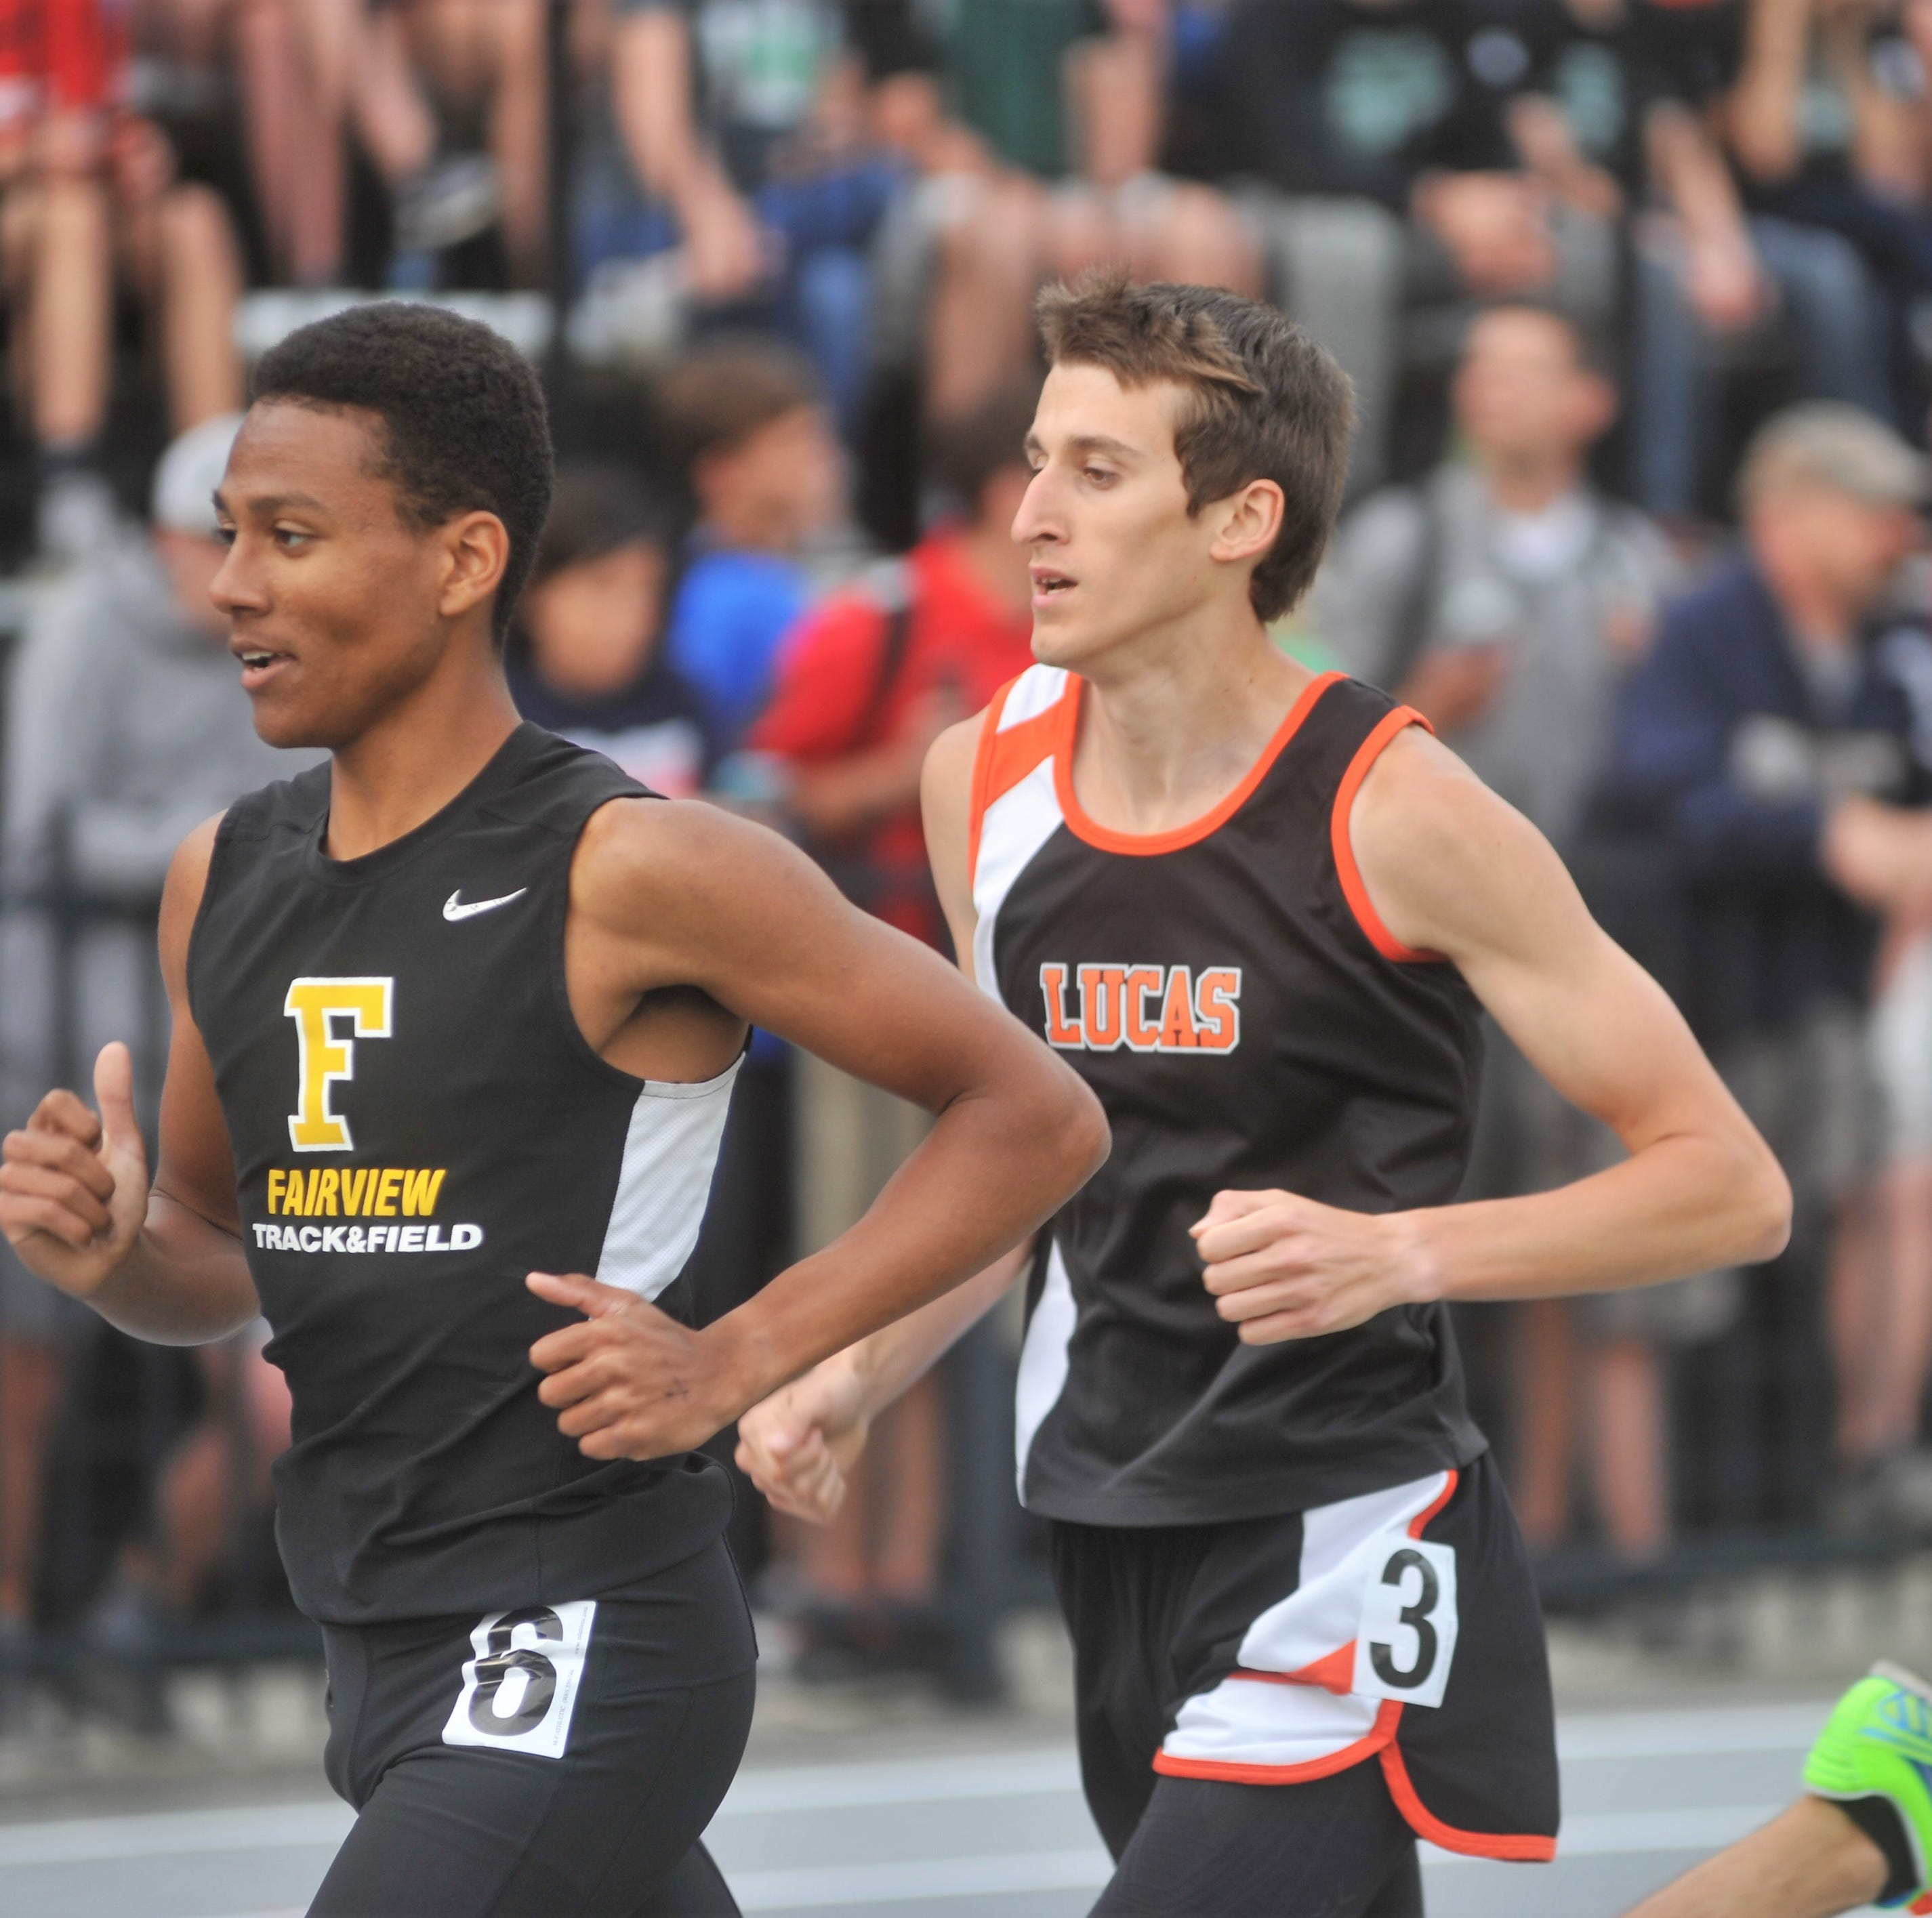 Lucas teammates win regional titles to lead state track qualifiers